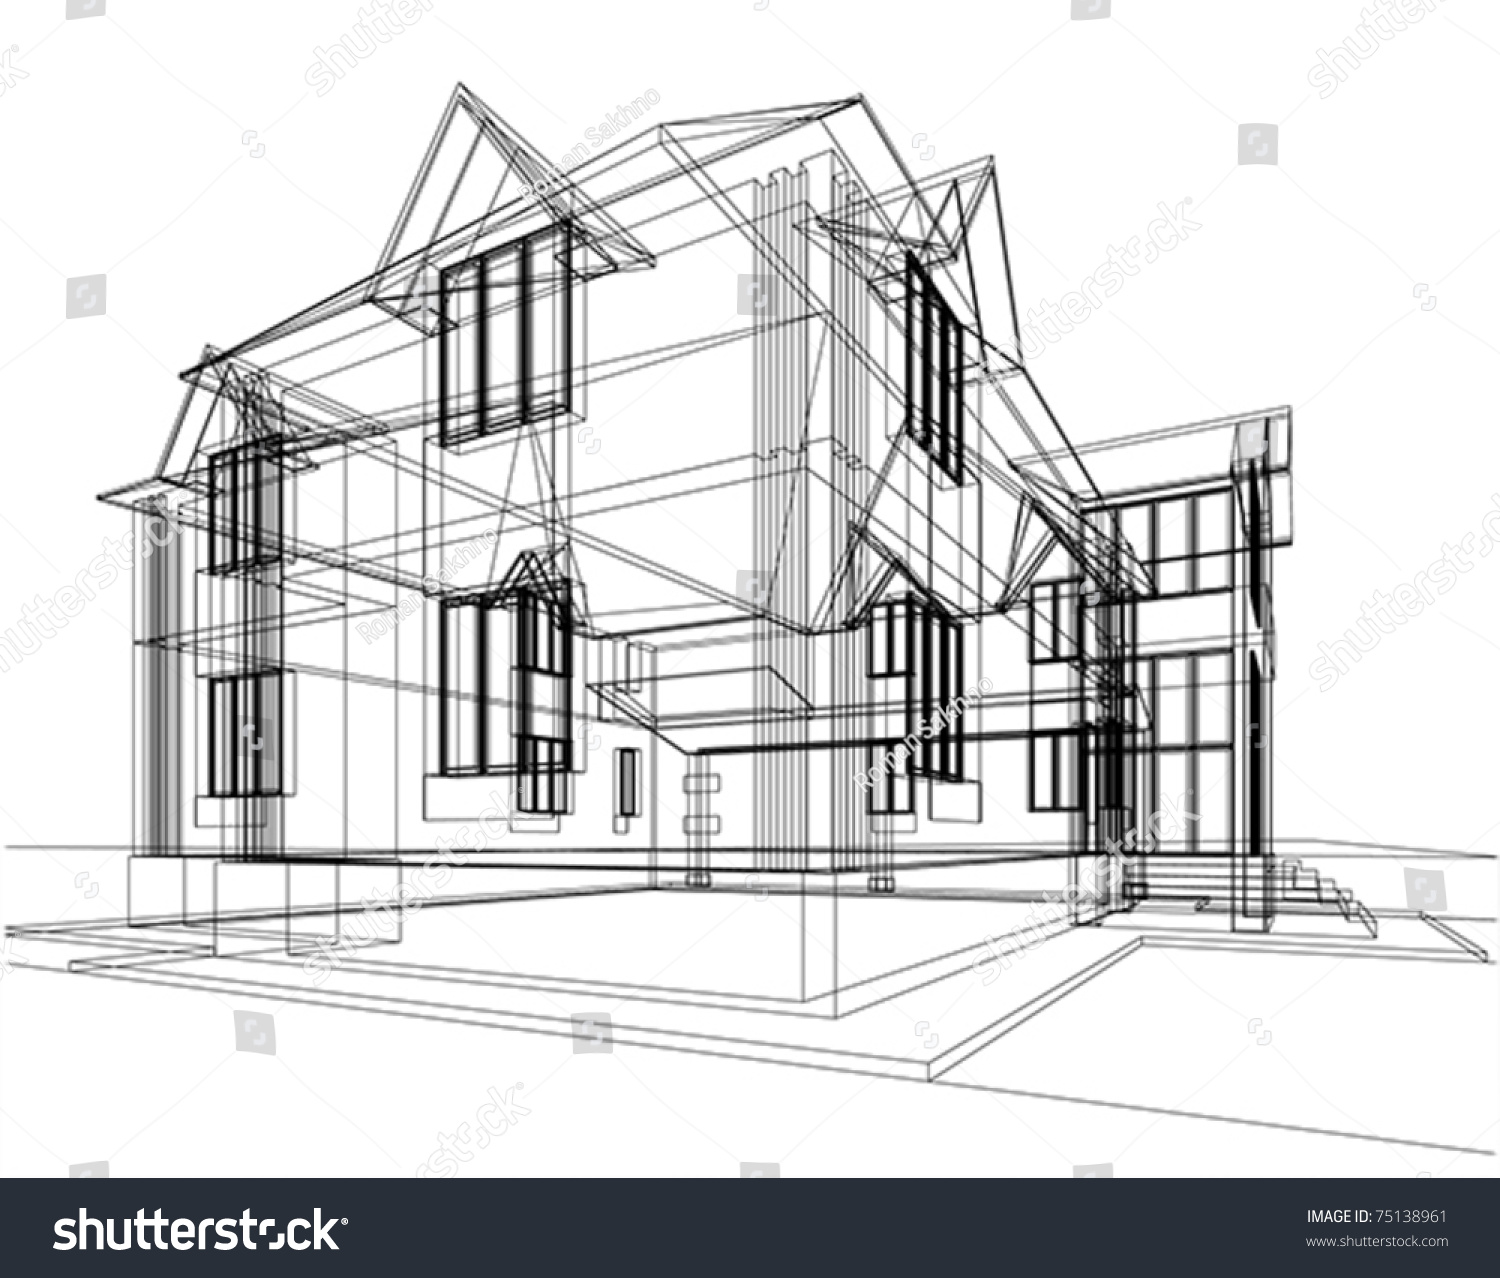 Abstract sketch house architectural 3d illustration stock for House sketches from photos